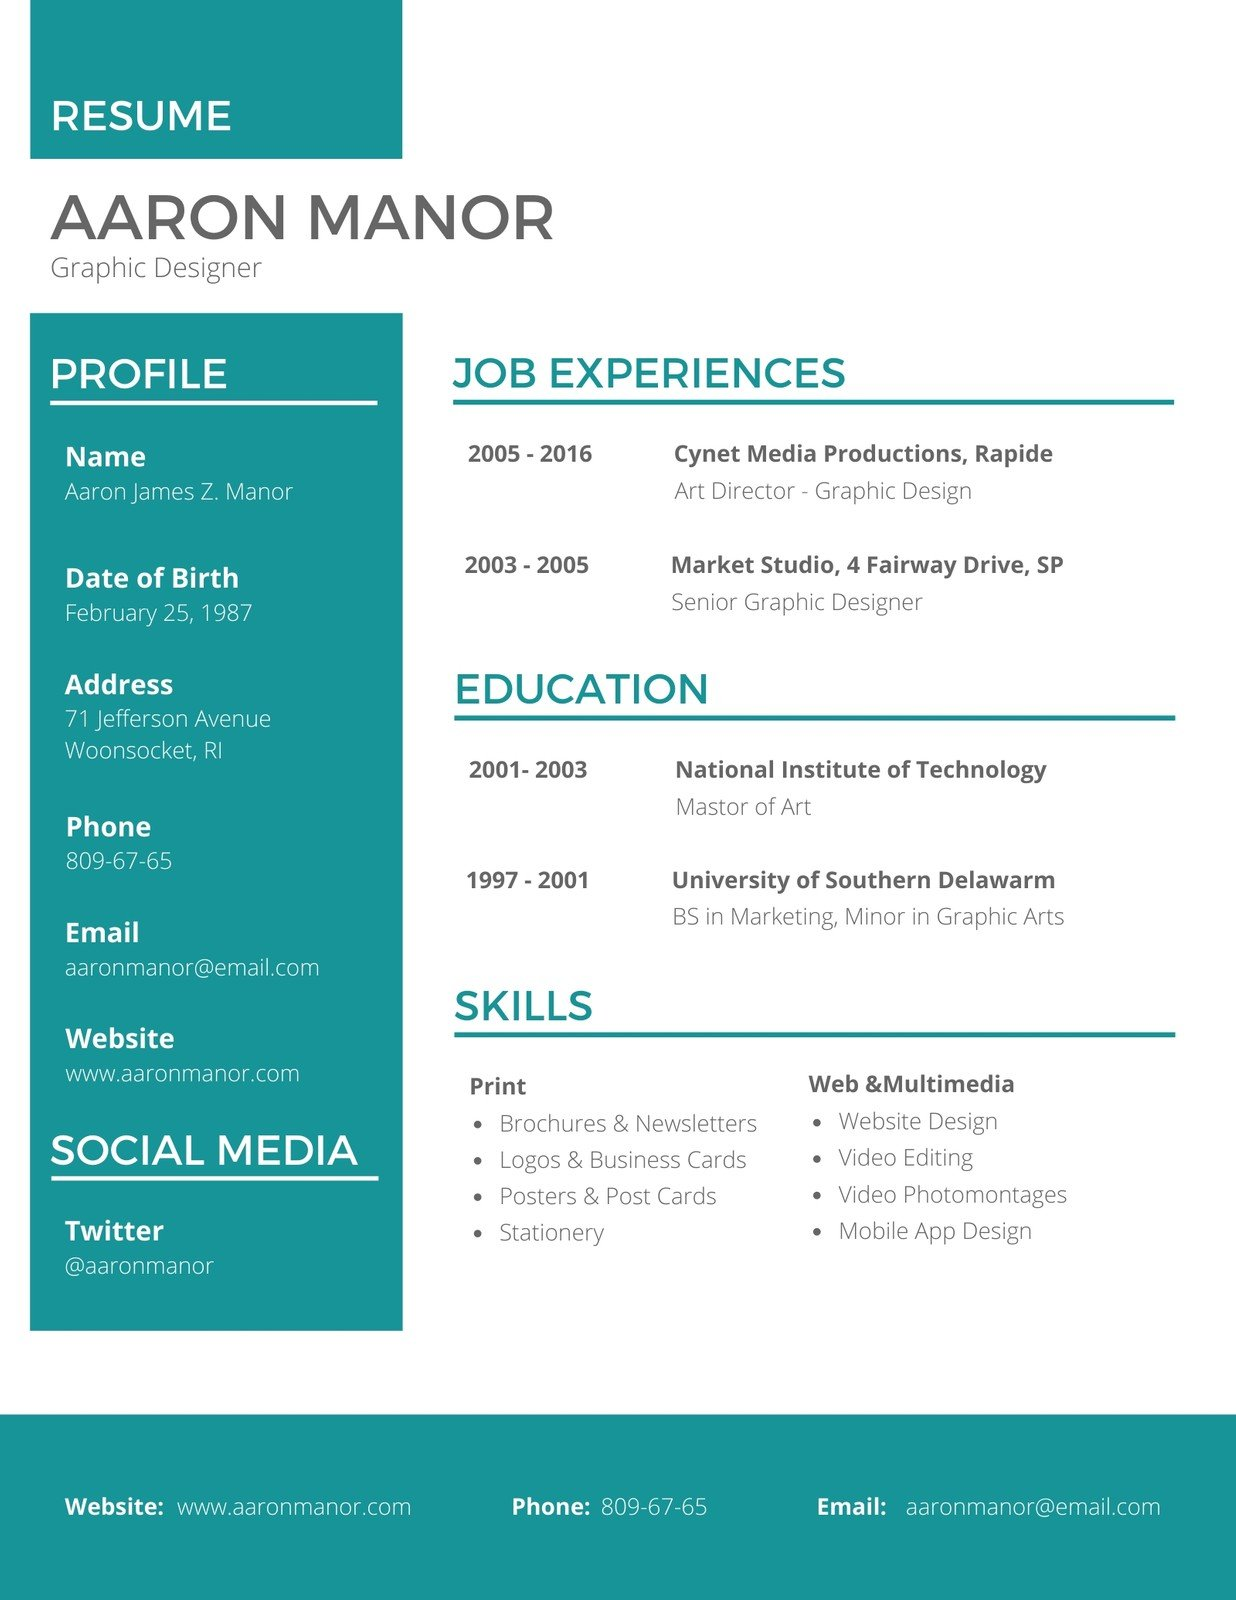 free graphics designer resume sample canva graphic lyzqp9iring assistant accountant Resume Graphics Designer Resume Sample Download